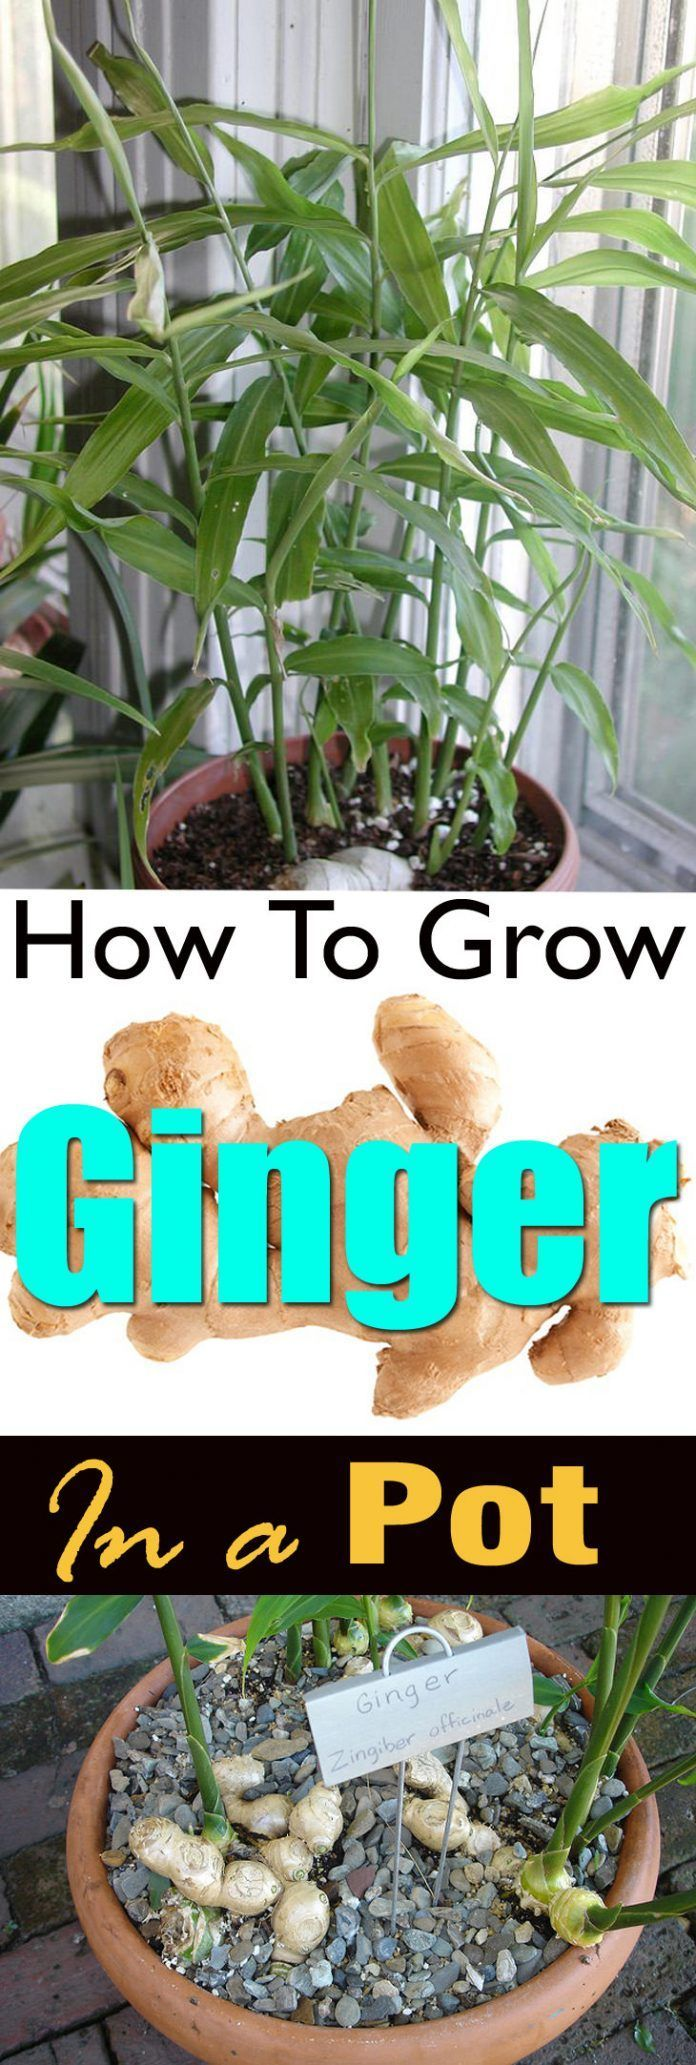 How To Grow Ginger In Pot | Growing Ginger Indoors https://www.uk-rattanfurniture.com/product/dometic-case-classic-2-gas-barbecue-30-mbar-4-3-heater-in-stainless-steel-including-gas-hose/